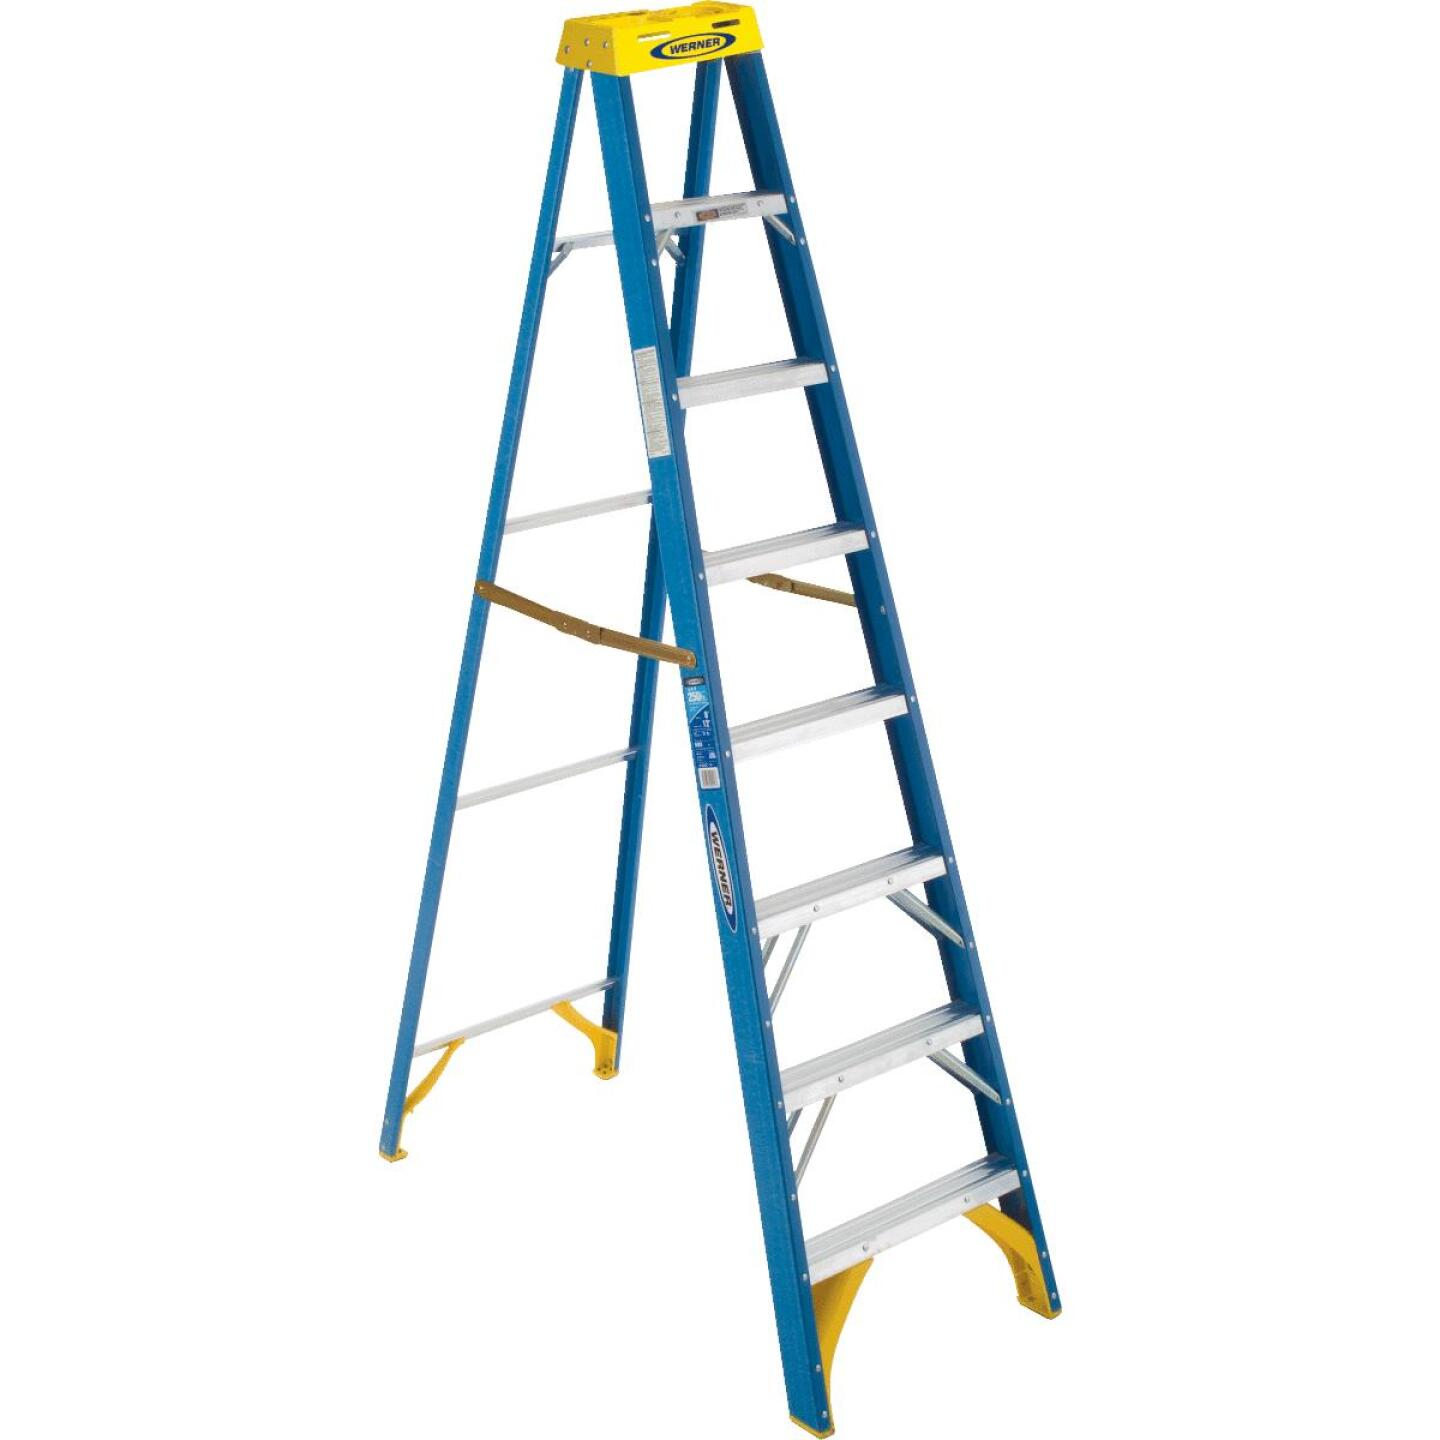 Werner 8 Ft. Fiberglass Step Ladder with 250 Lb. Load Capacity Type I Ladder Rating Image 1